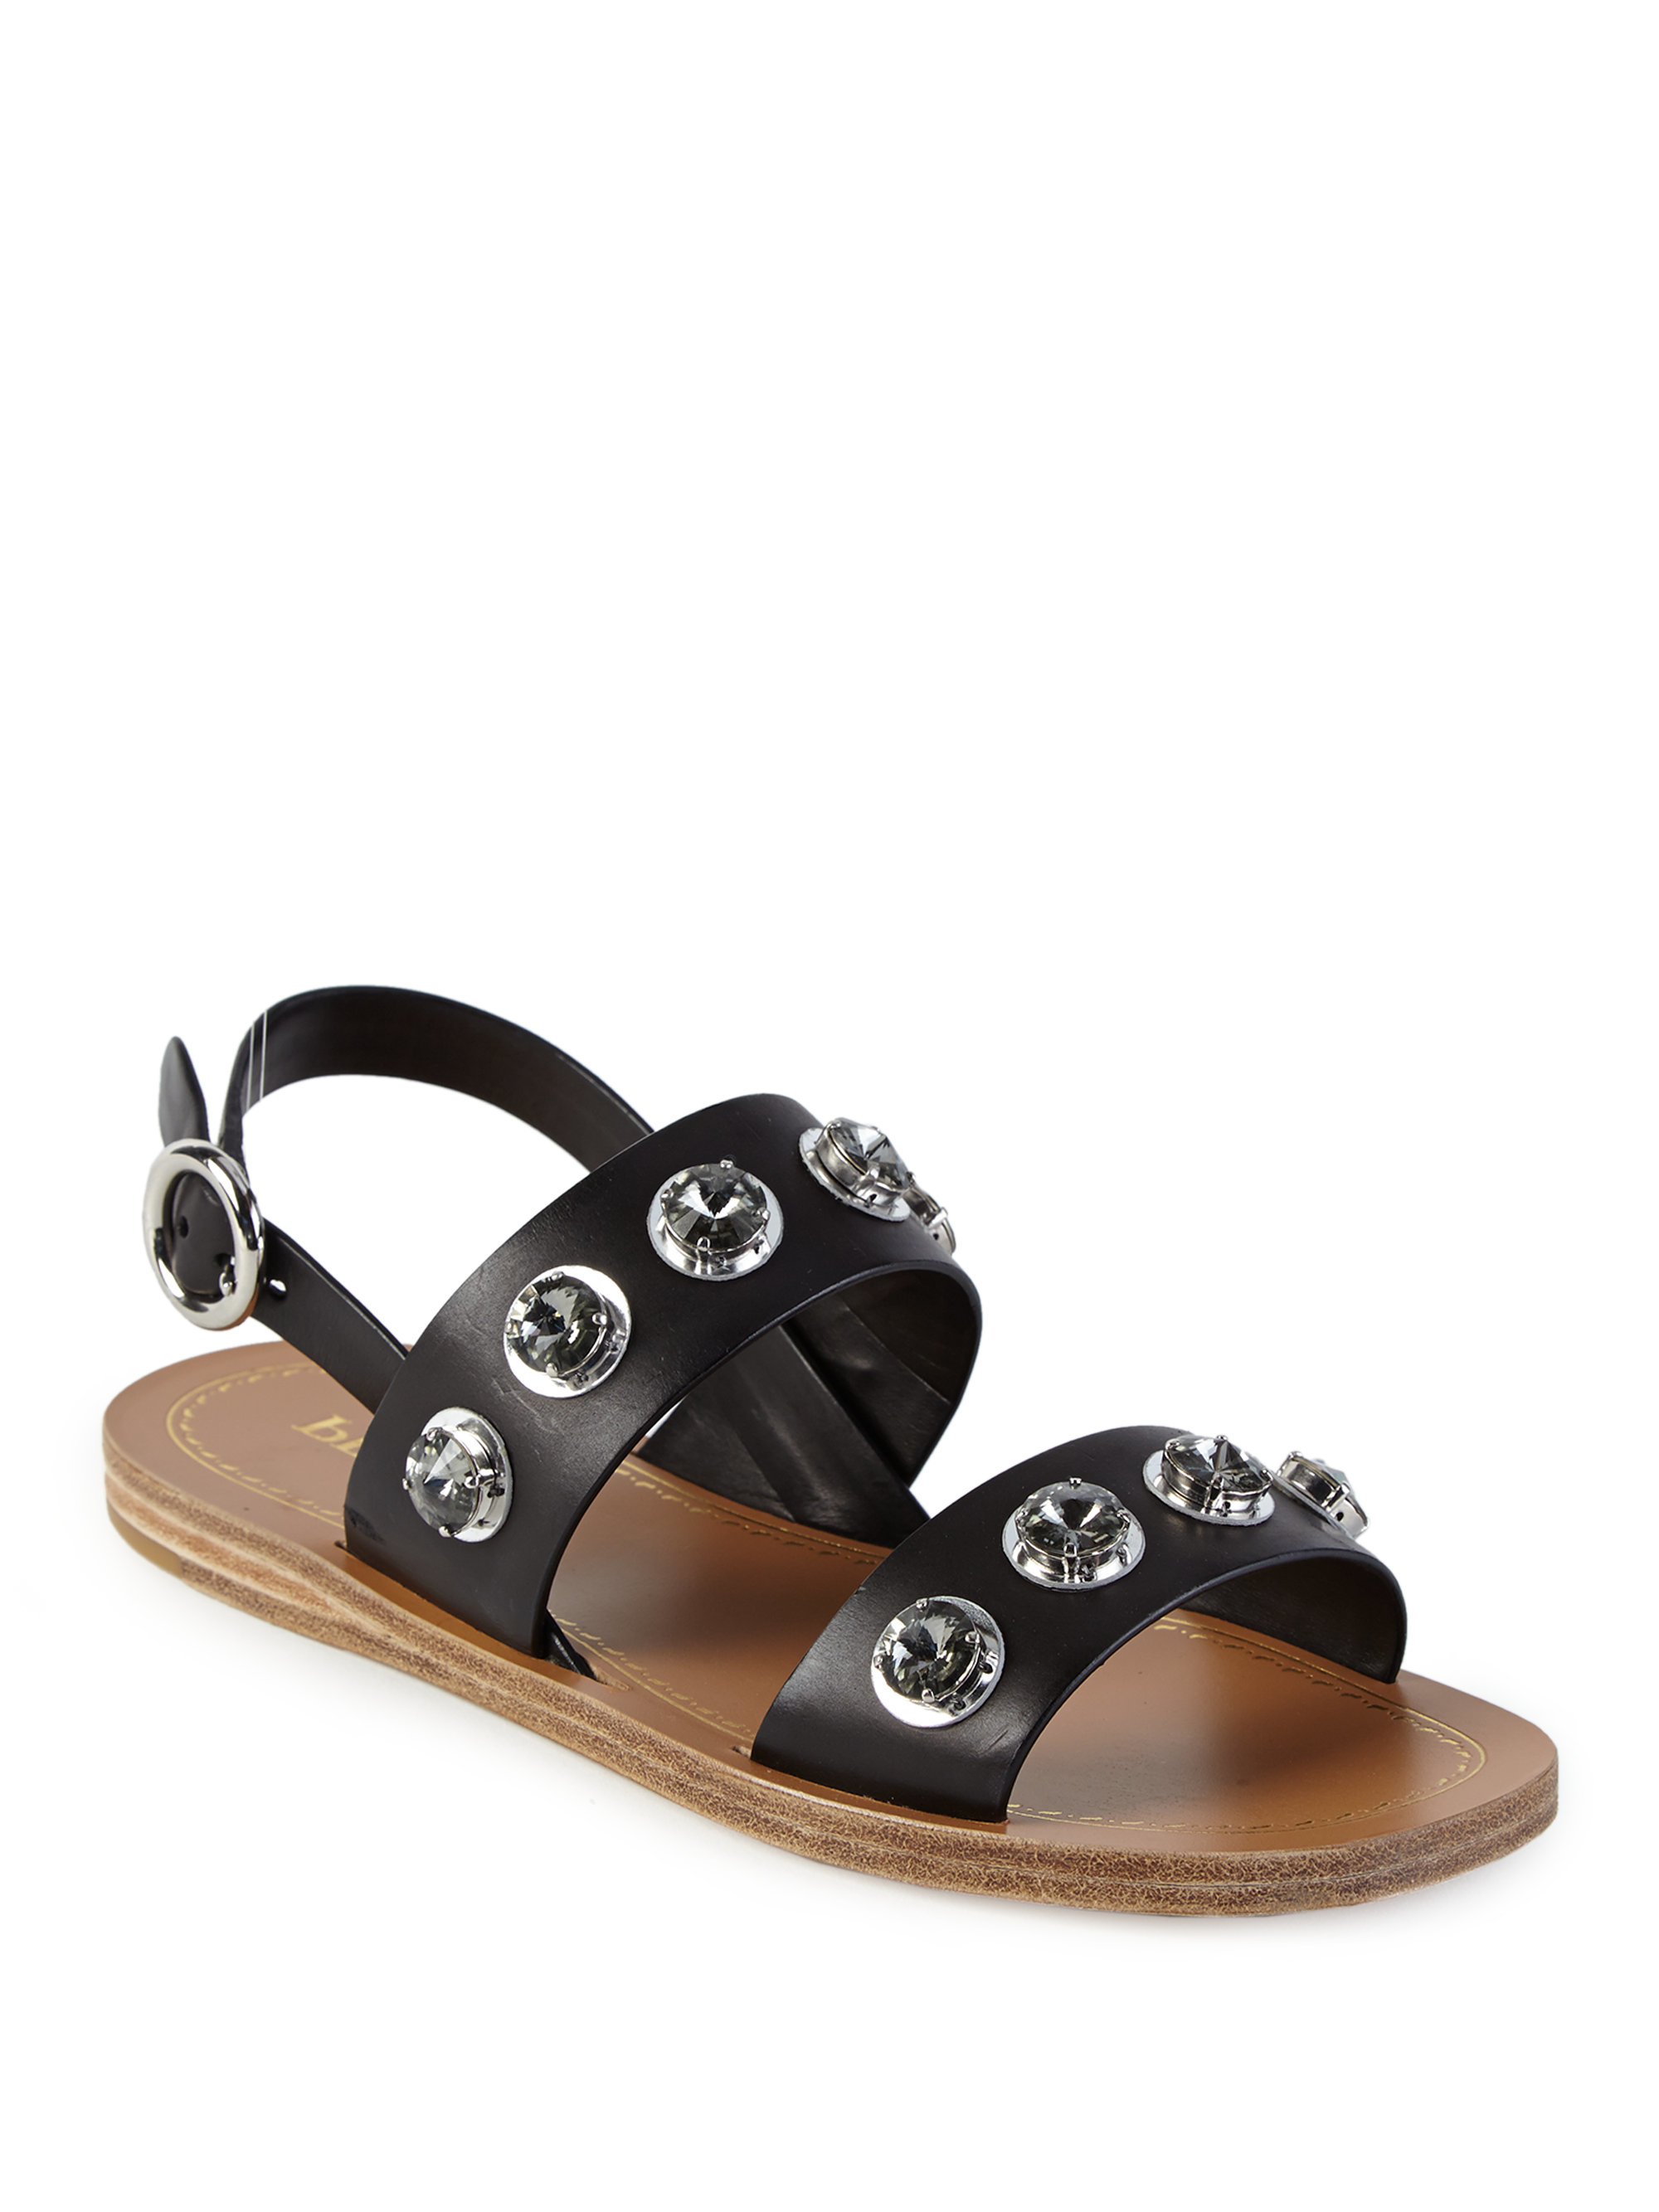 95a131bd5 Lyst - Prada Jeweled Leather Flat Sandals in Black